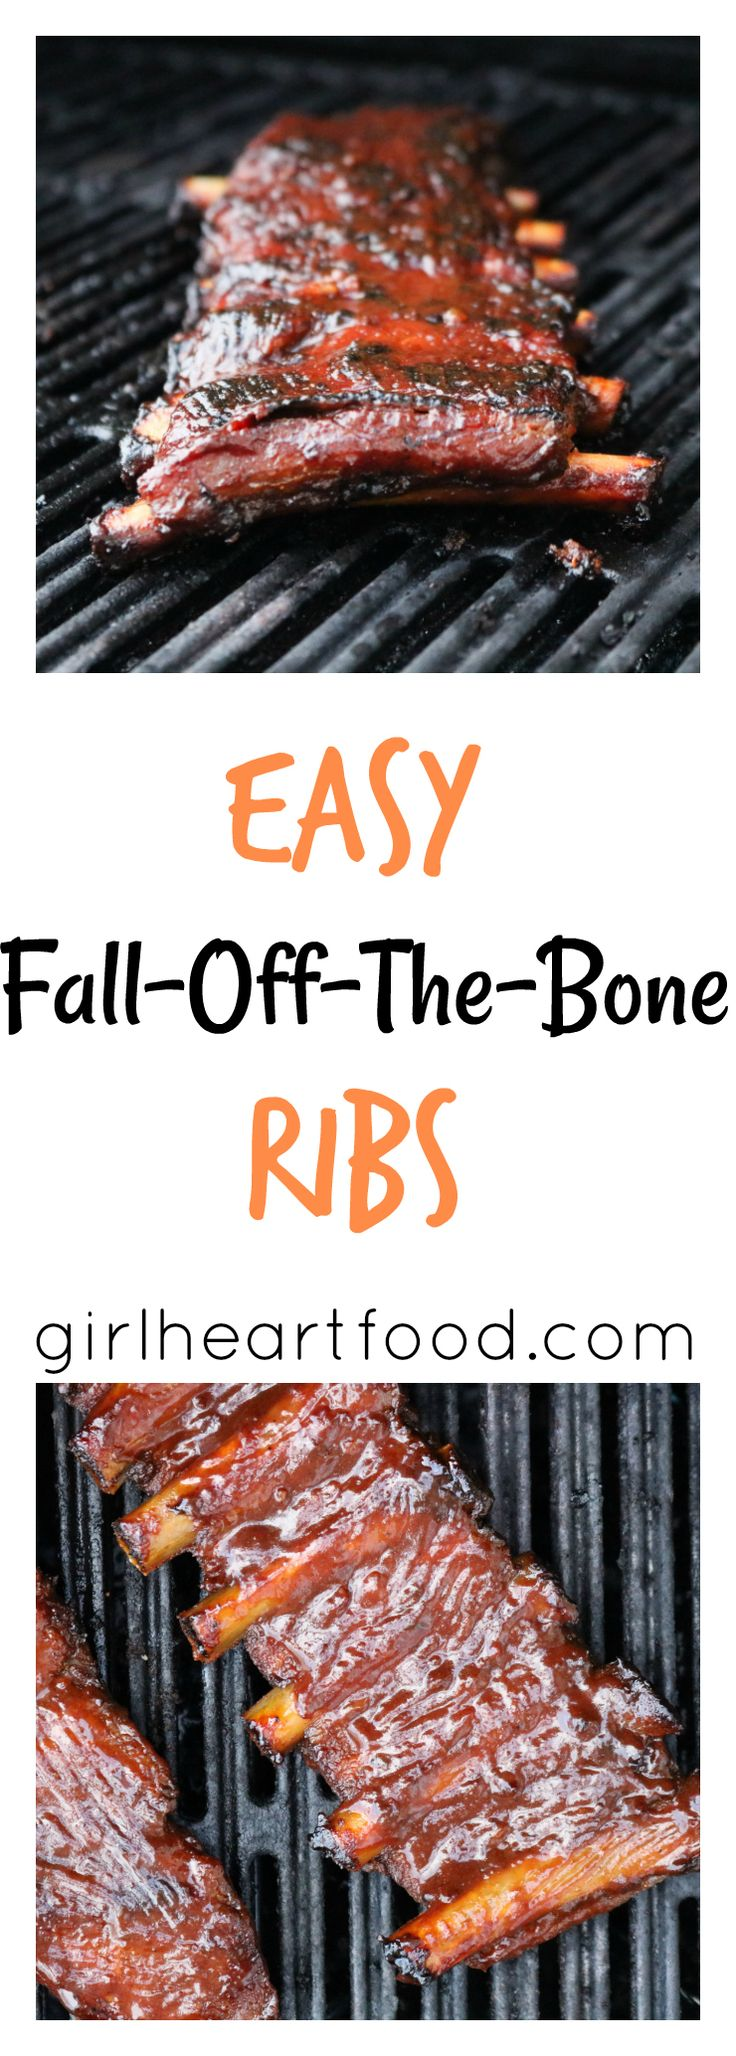 This recipe for easy fall-off-the-bone ribs is delicious! Pork ribs are coated with a simple spice mixture, baked, brushed with bbq sauce & then grilled.